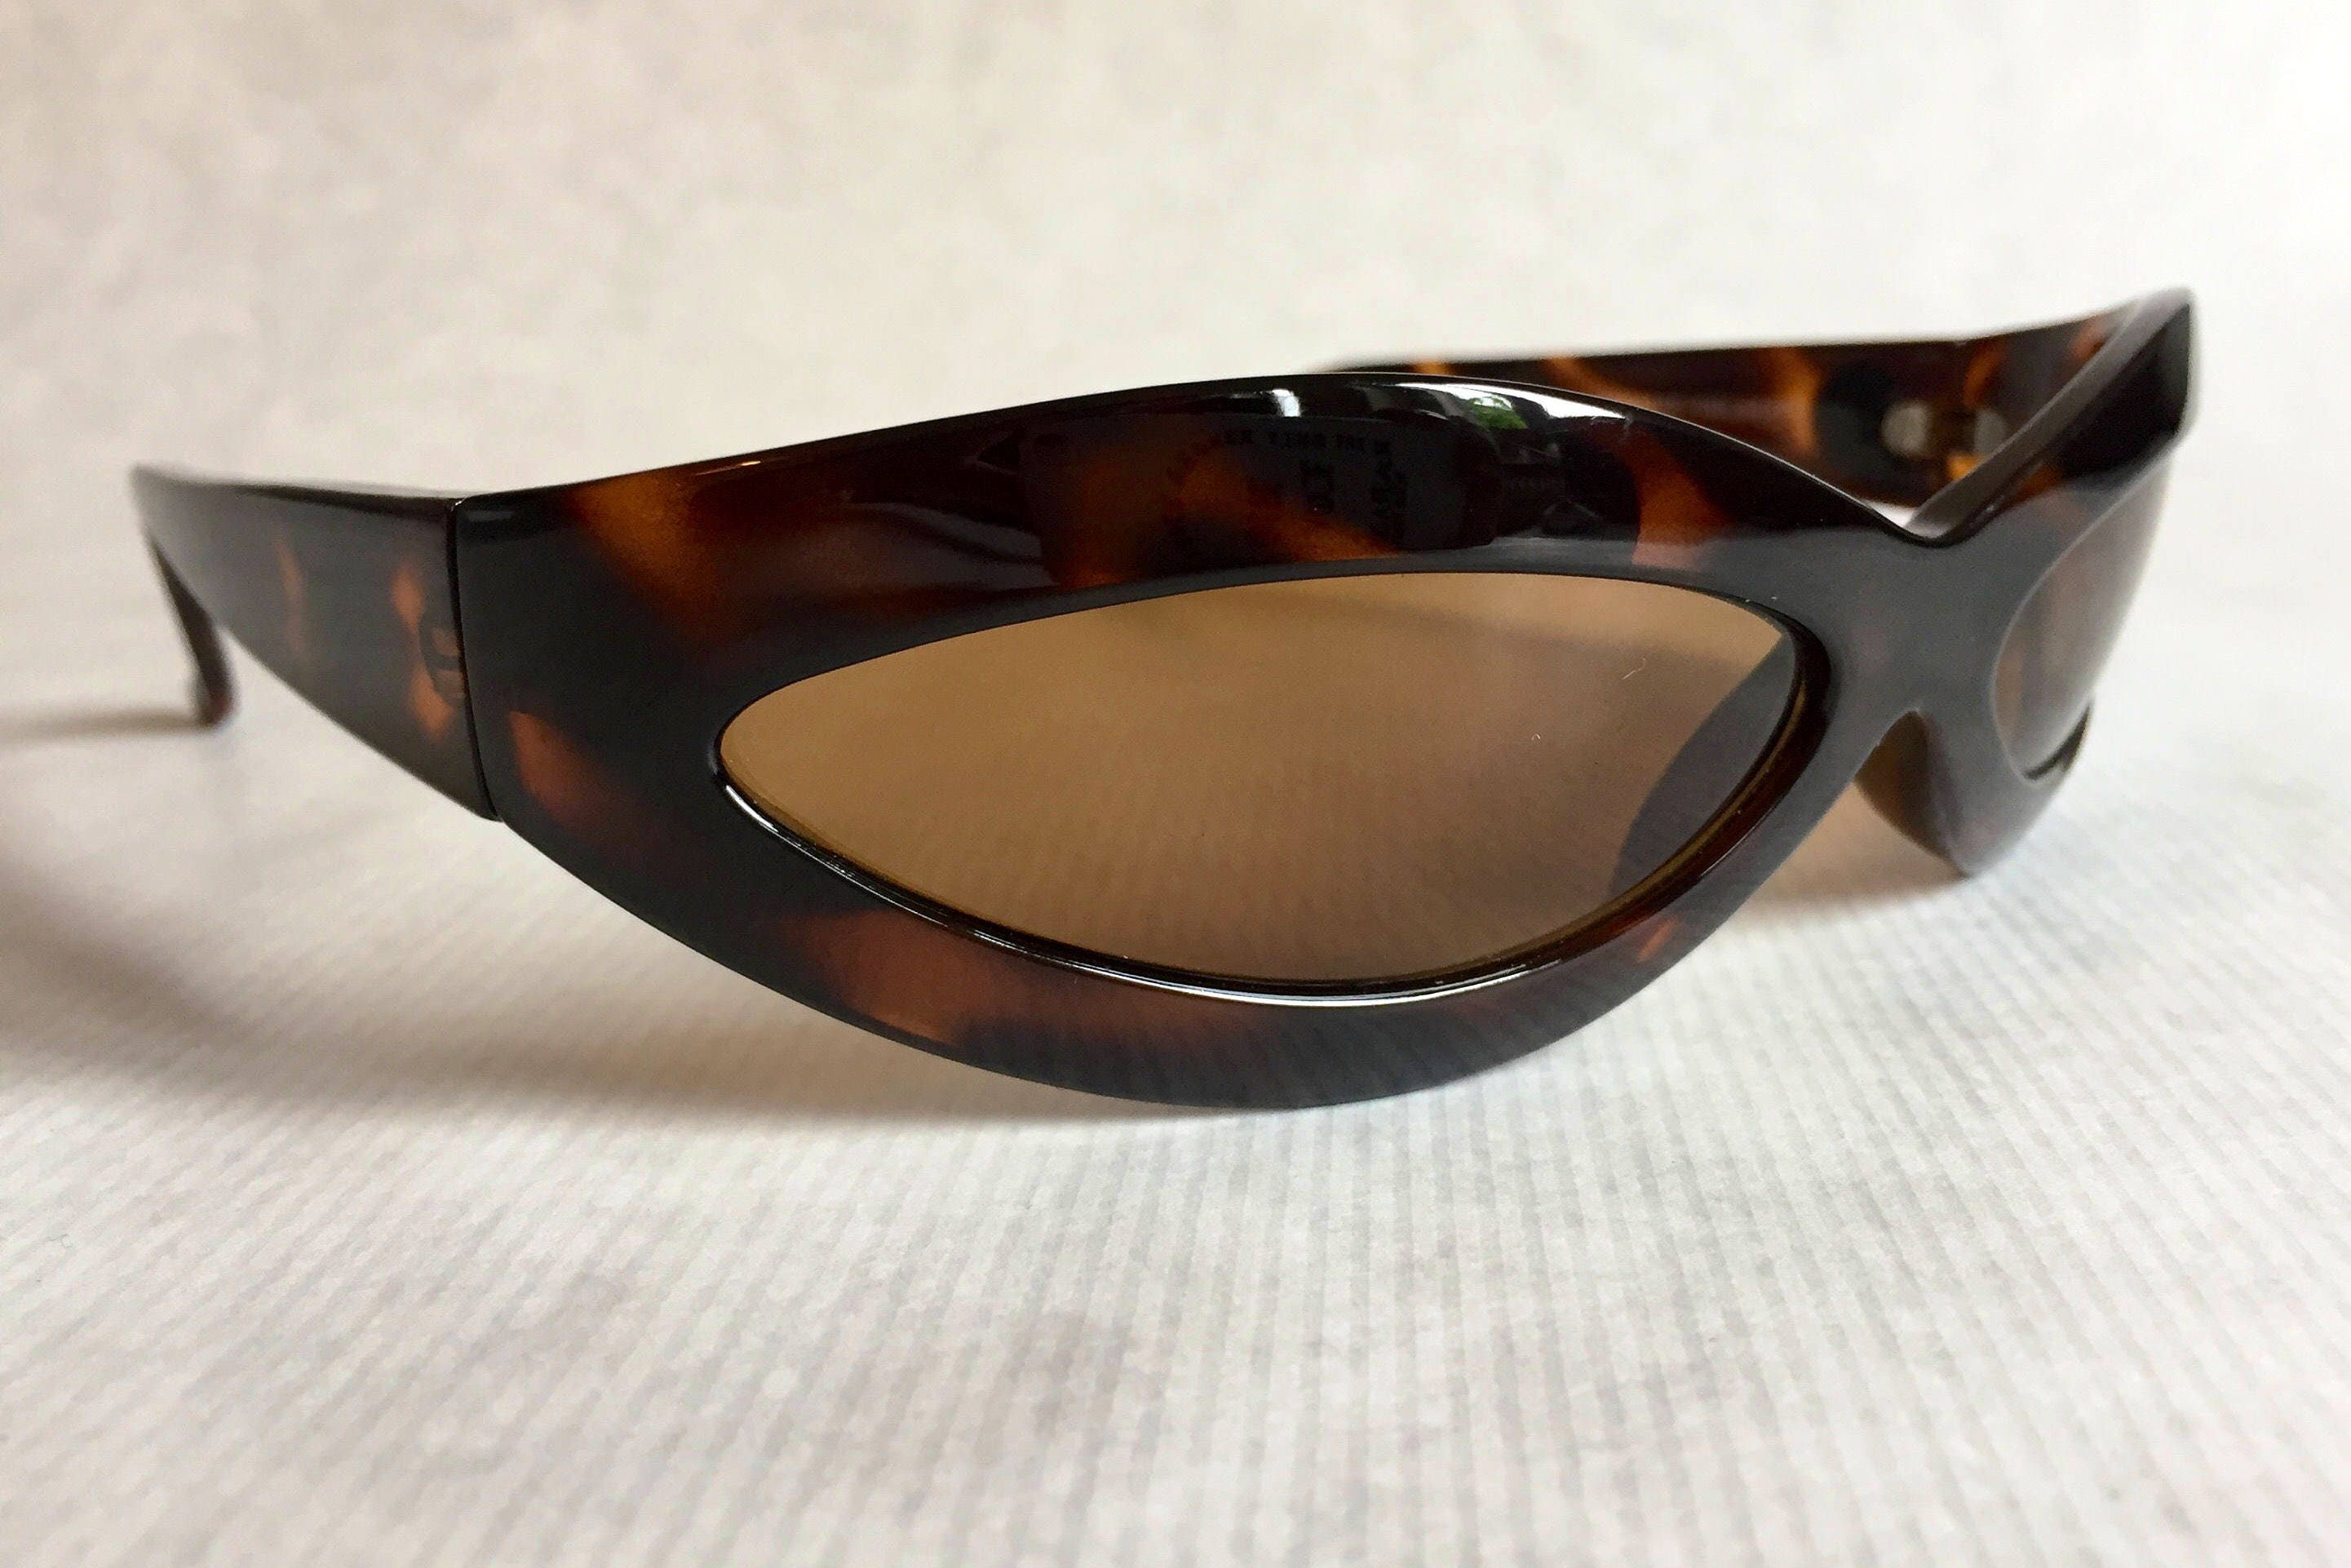 c8bd25c952e42 Gianni Versace 440 Mask Vintage Sunglasses New Never Worn including Original  Softcase. gallery photo ...